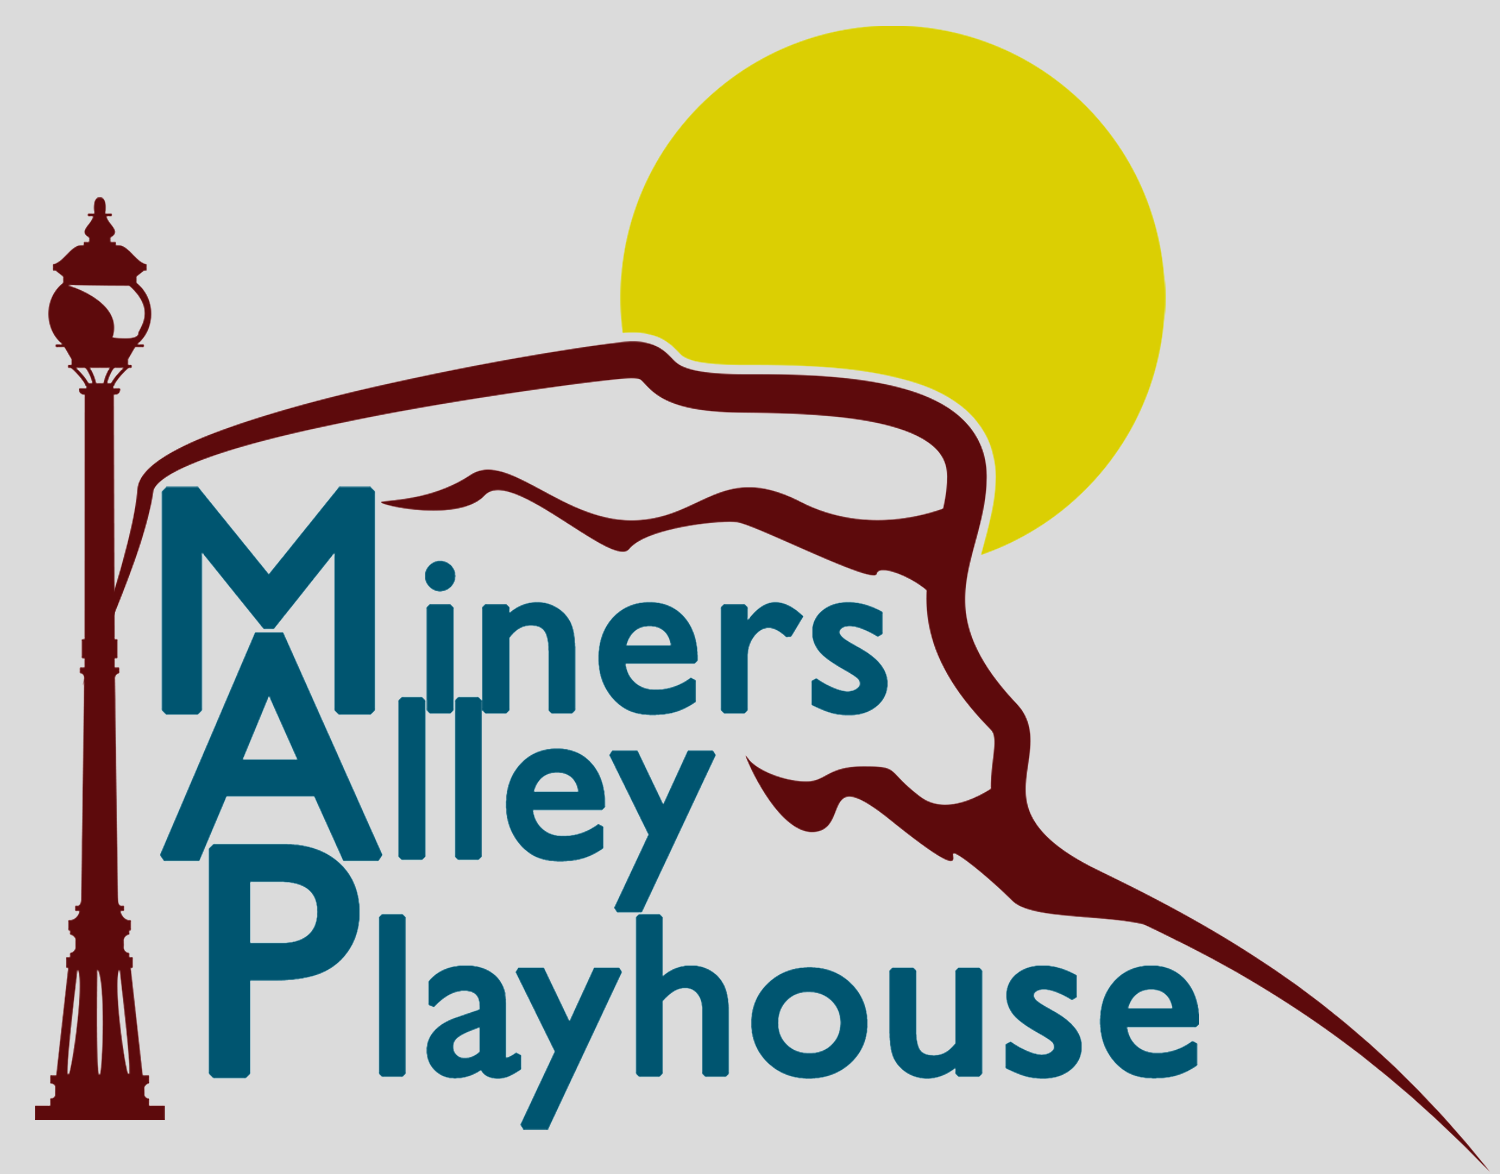 Miners Alley Playhouse